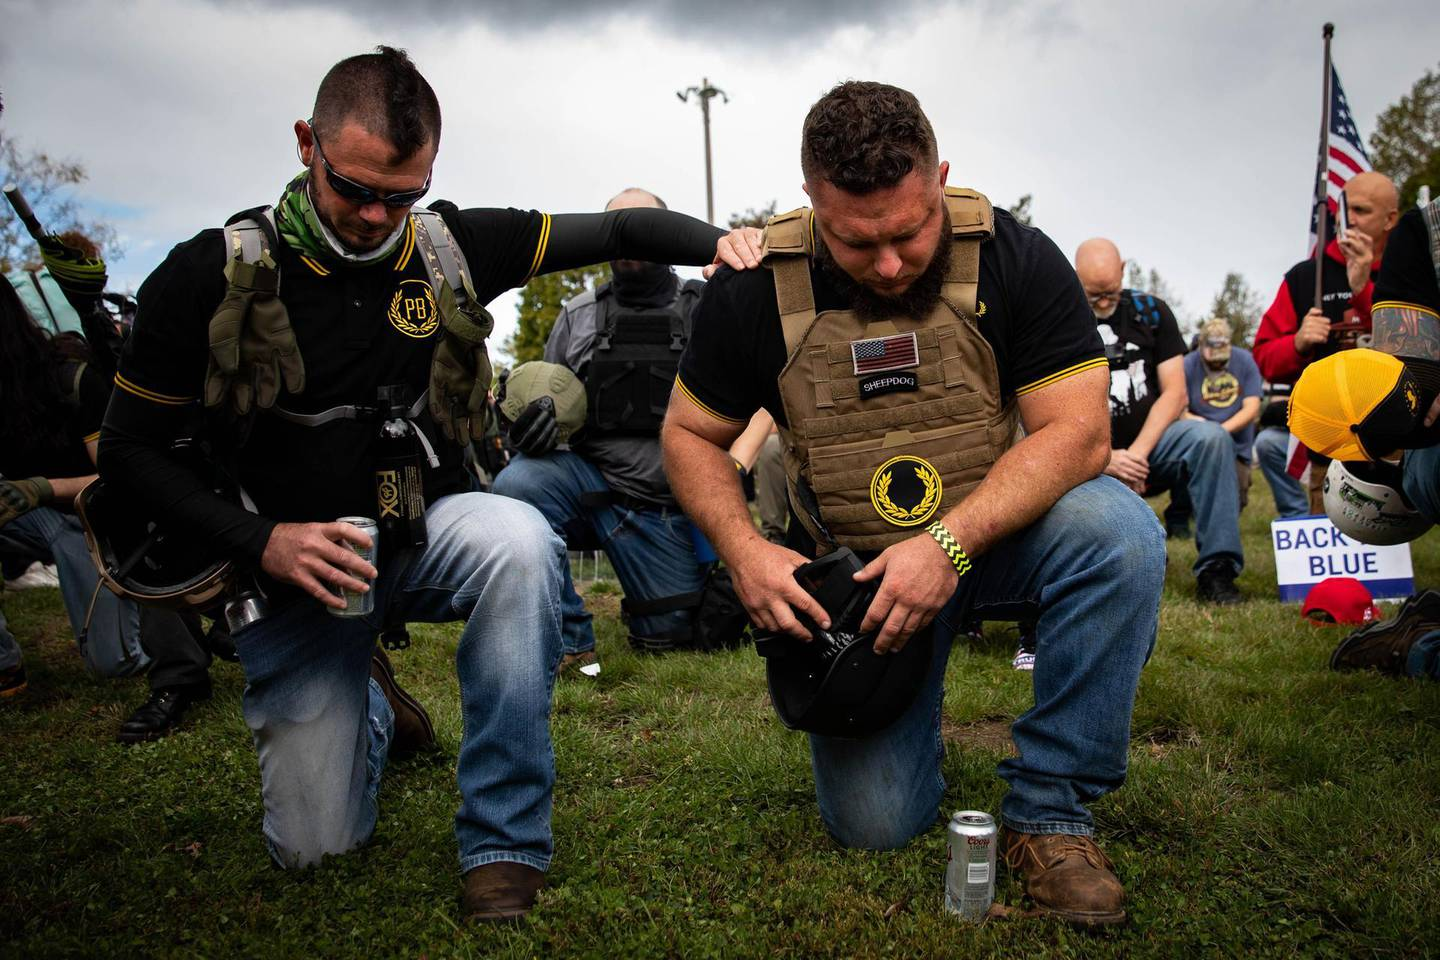 """People take a knee as an organizer reads a prayer to the crowd of several hundred gathered during a Proud Boys rally at Delta Park in Portland, Oregon on September 26, 2020. Far-right group """"Proud Boys"""" members gather in Portland to show support to US president Donald Trump and to condemn violence that have been occurring for more than three months during """"Black Lives Matter"""" and """"Antifa"""" protests.   / AFP / Maranie R. STAAB"""